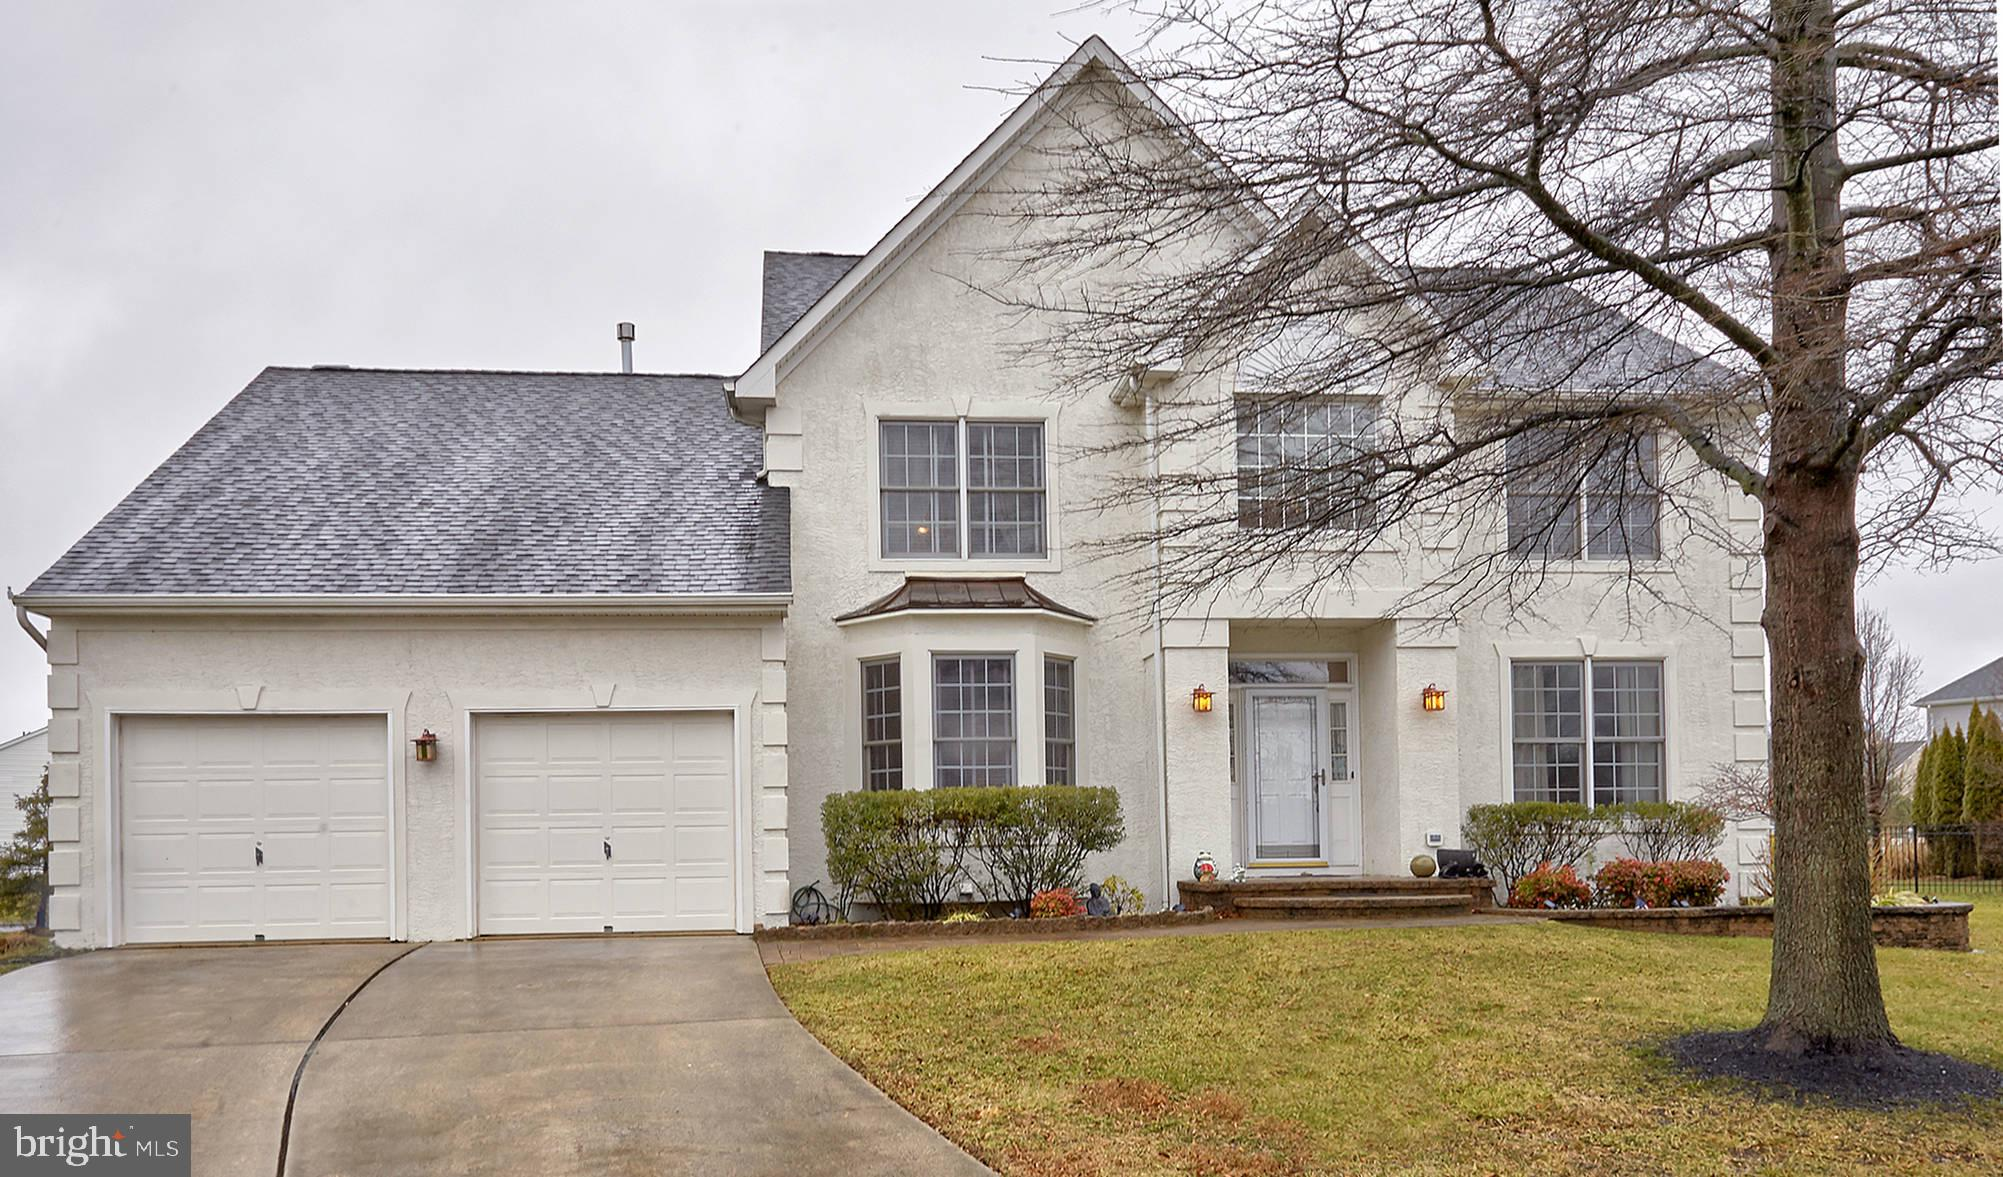 9 BAY HILL COURT, MOUNT HOLLY, NJ 08060